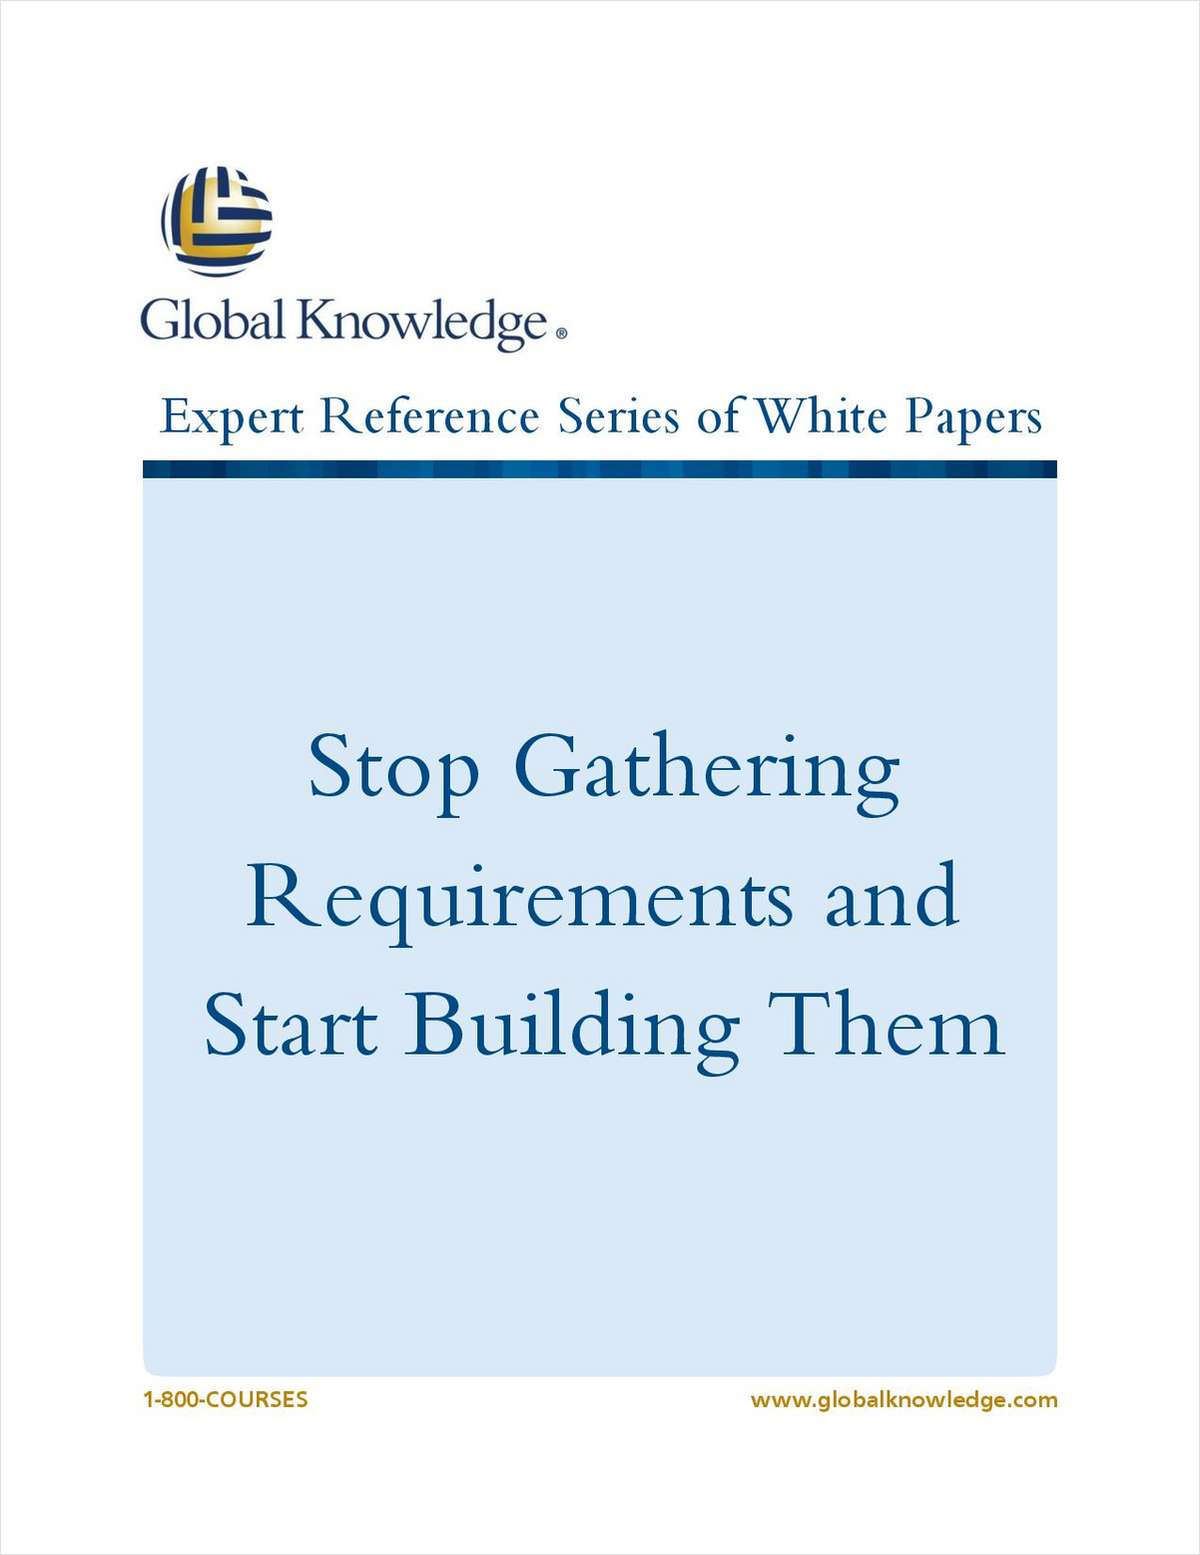 Stop Gathering Requirements and Start Building Them